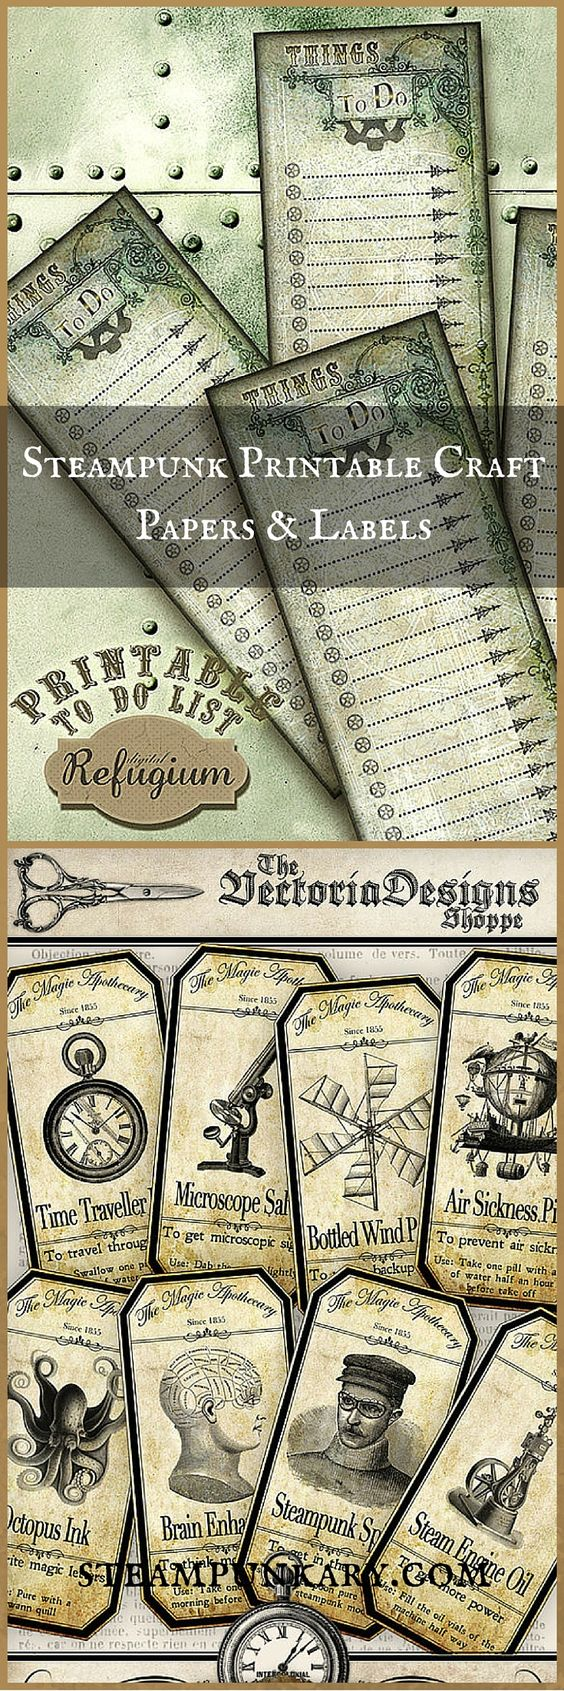 Ring In The Steampunk Decor To Pimp Up Your Home: Printable Crafts, Craft Papers And Steampunk On Pinterest